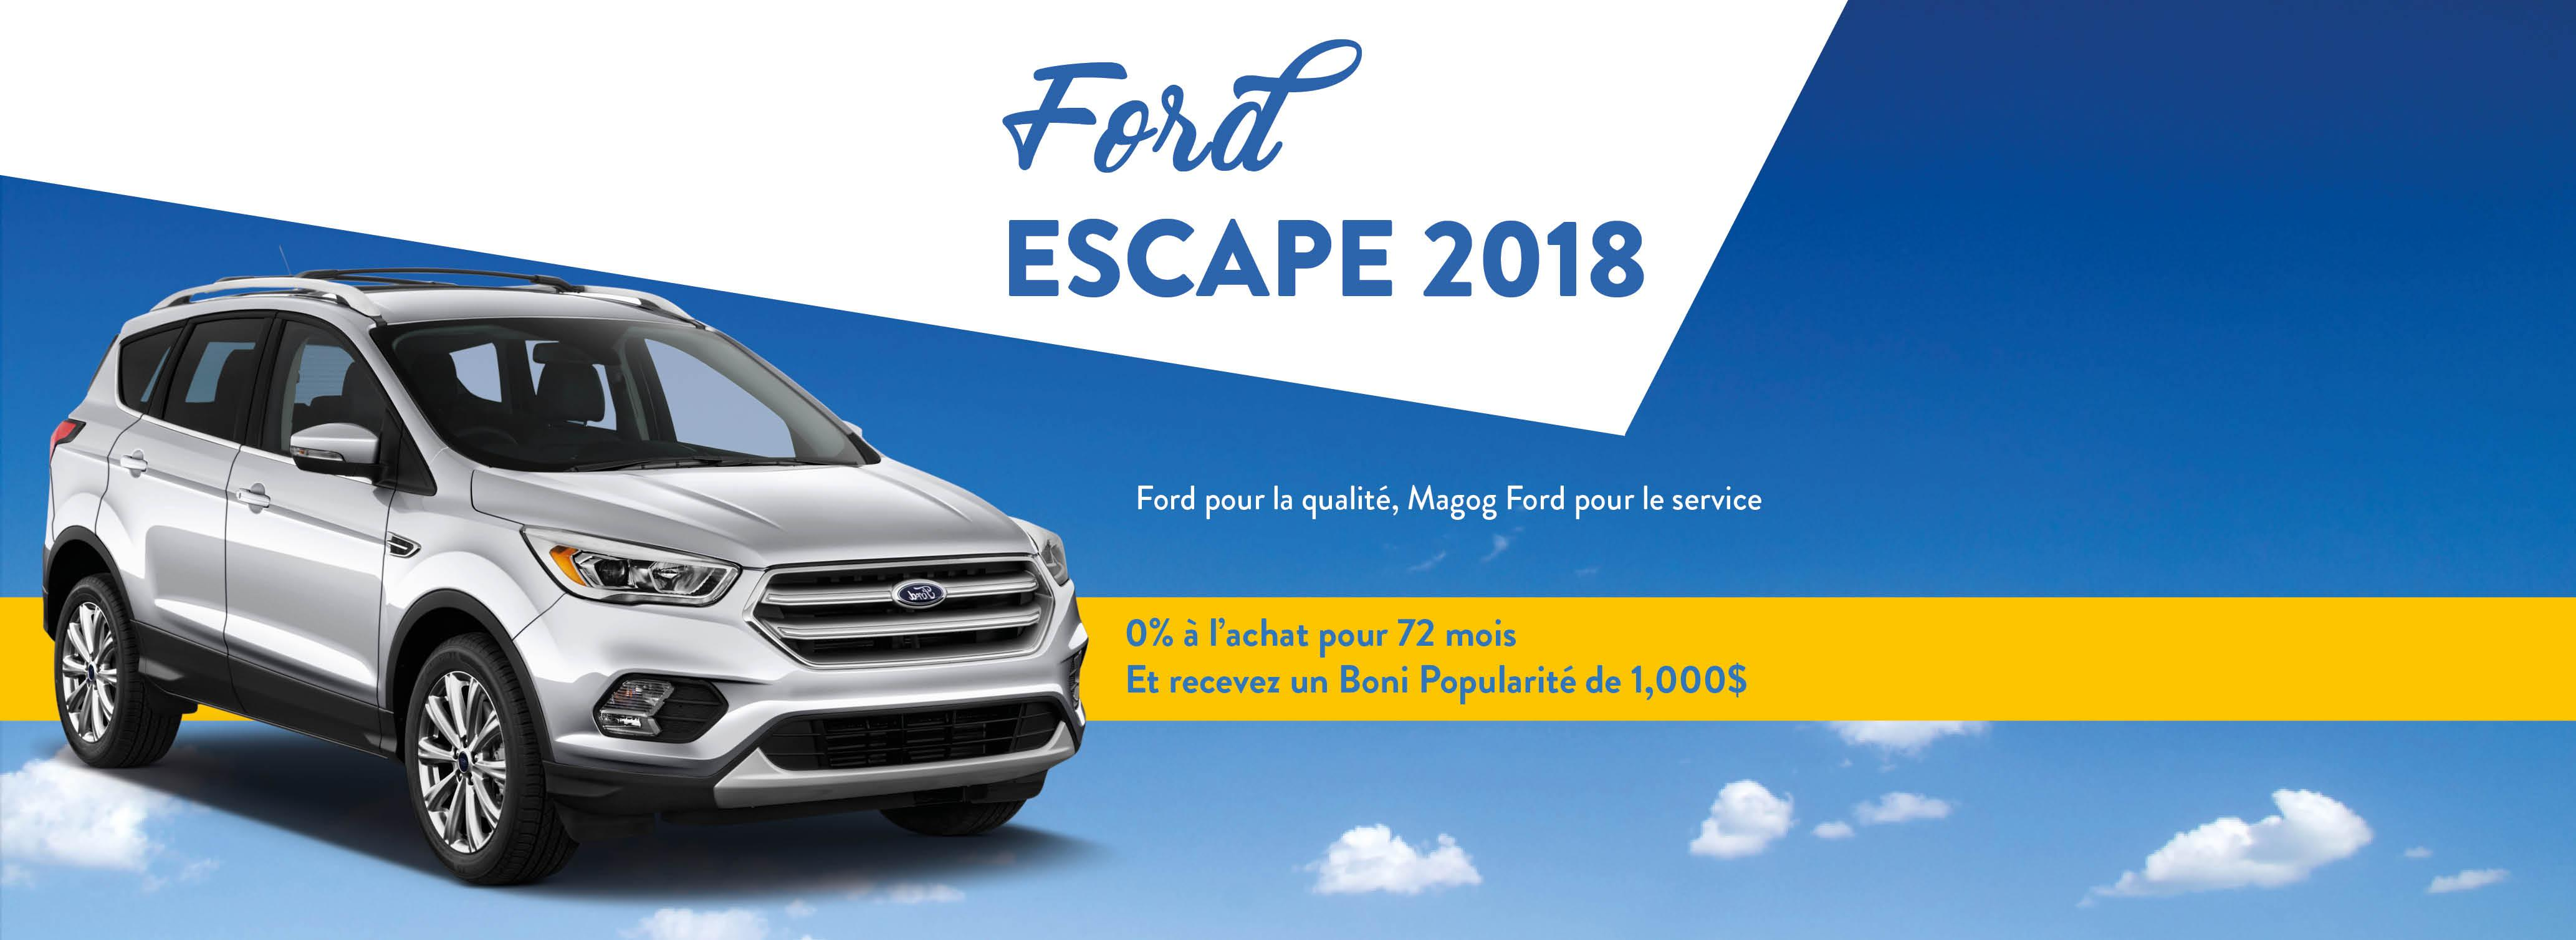 Ford Escape 2018 Promotion